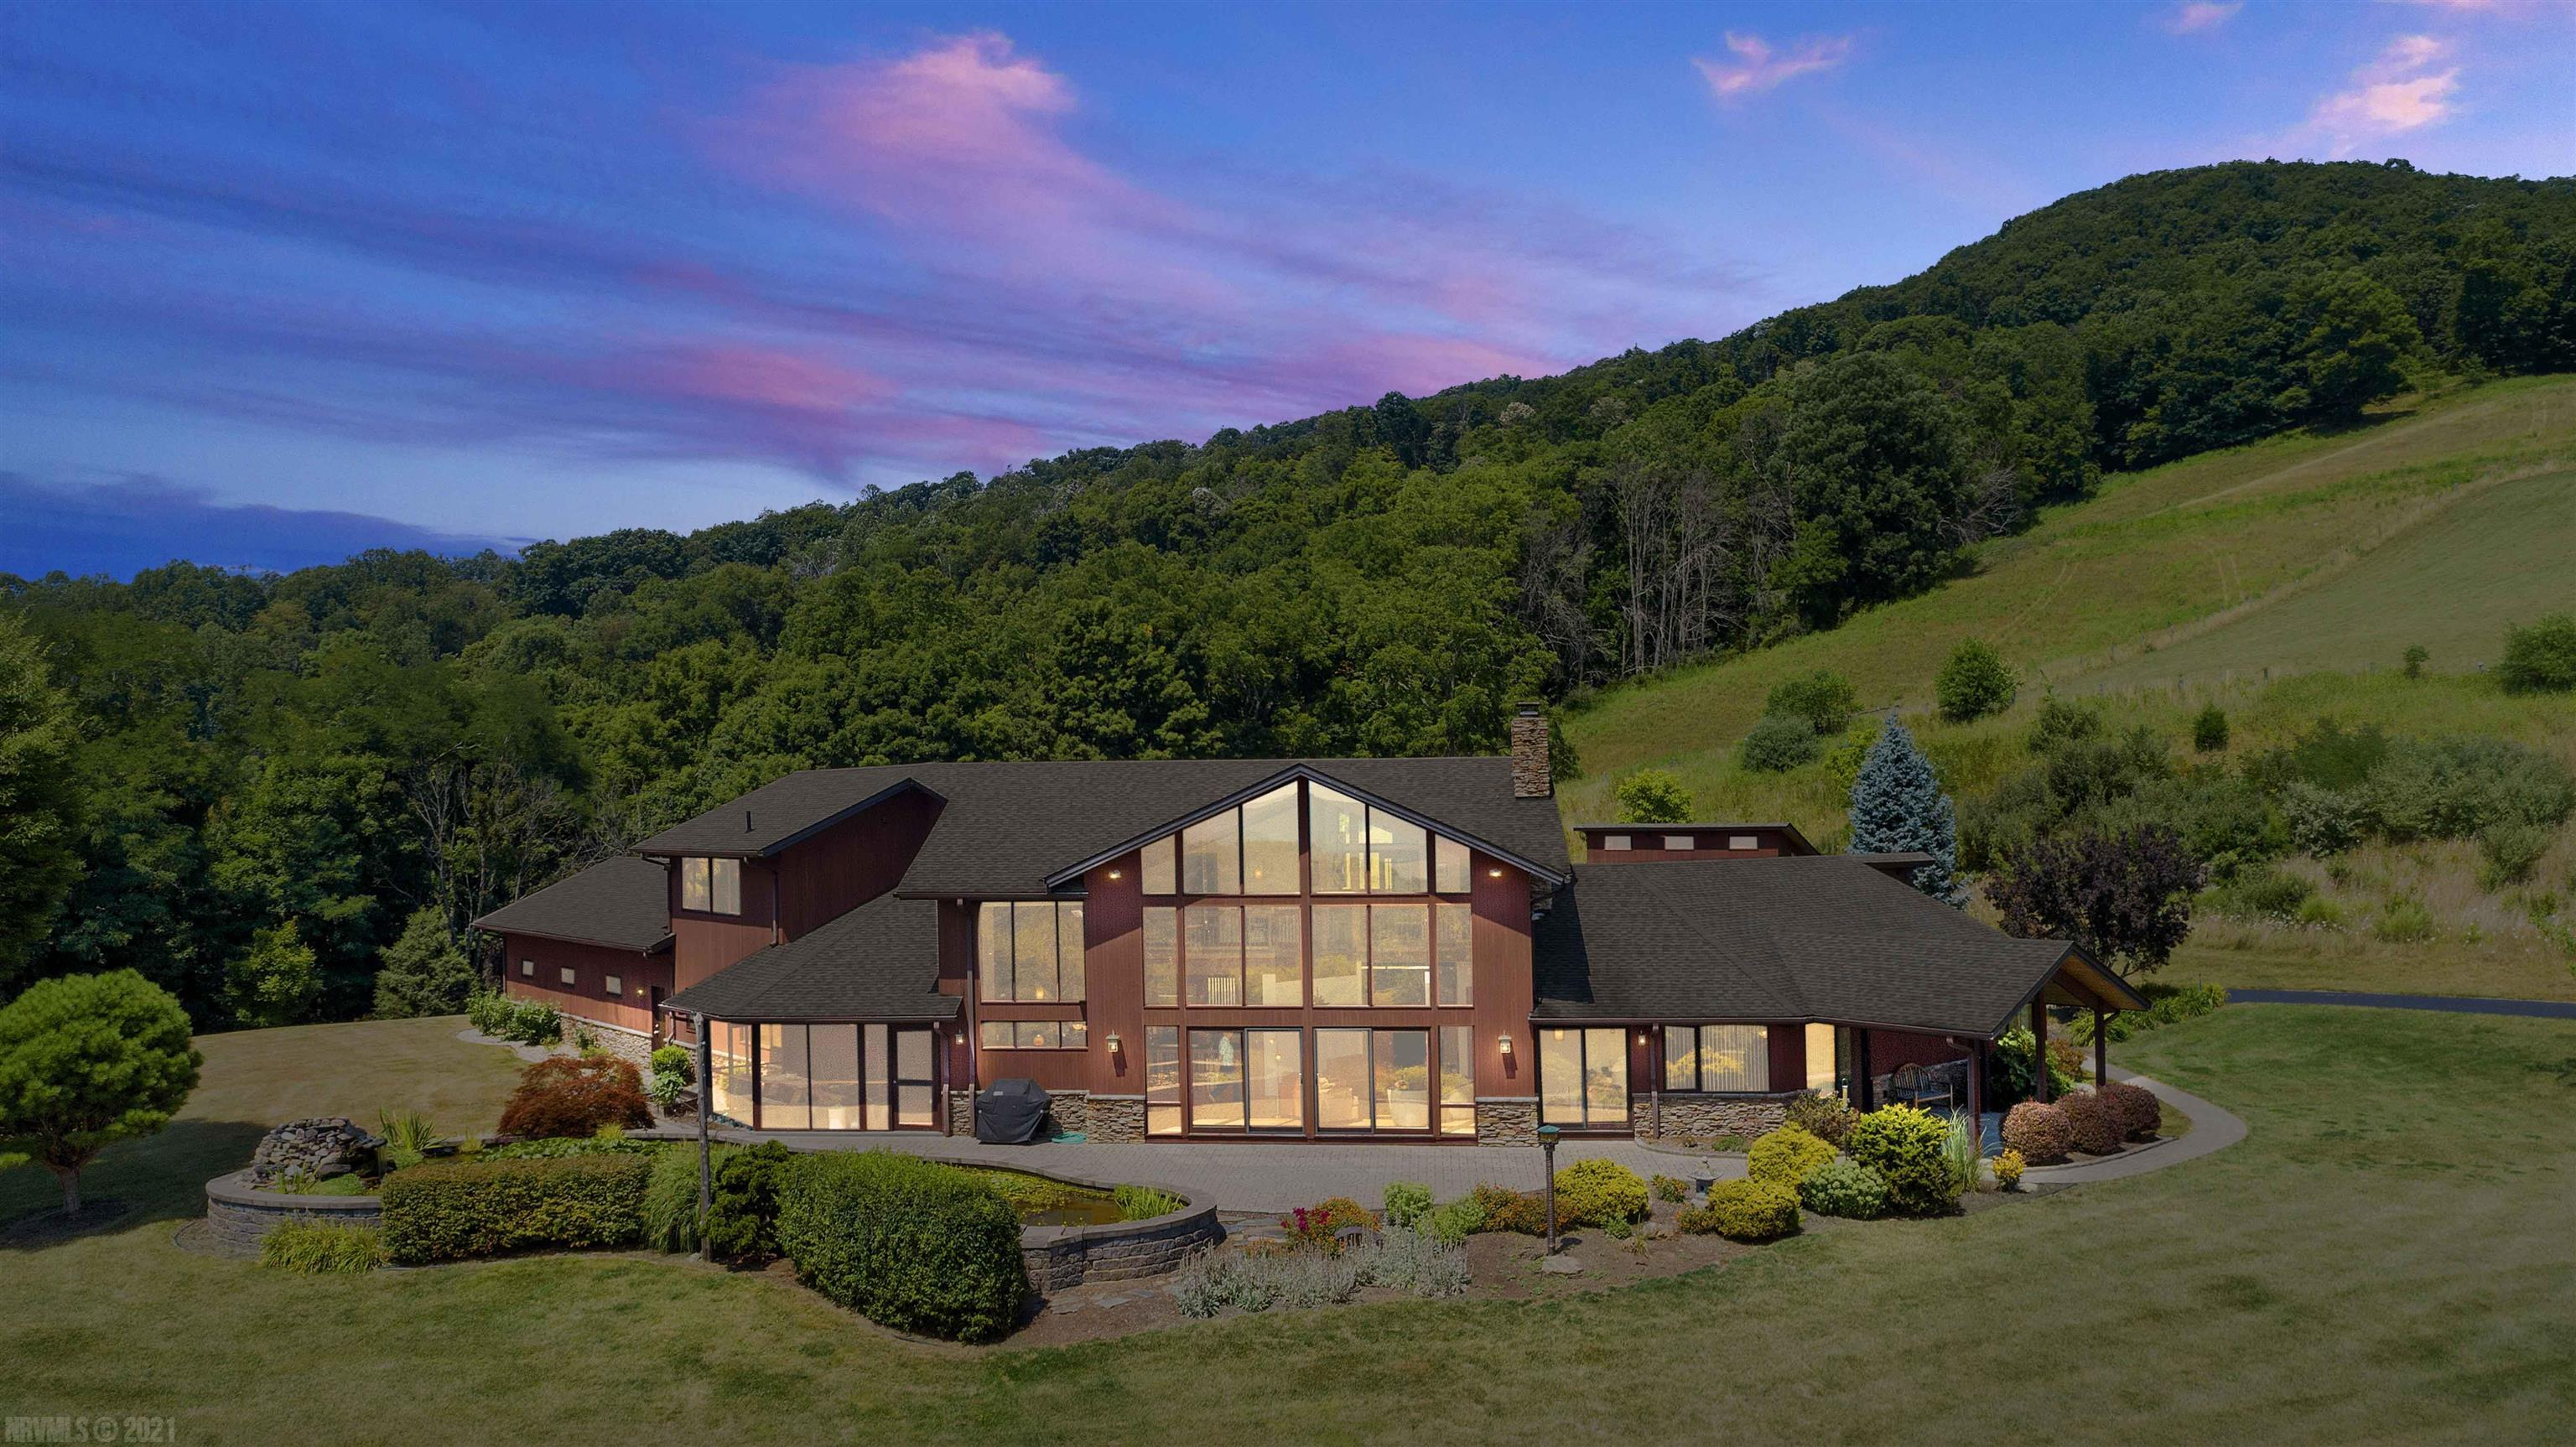 This 5,151 sq. ft. open contemporary sitting in an open meadow just below Mtn. Lake Resort, 10 minutes from Blacksburg town limits is a resort in itself.  The 4 bd. rm., 3.5 bath home was meticulously built with attention to every detail beginning with the Western Red Cedar siding, exposed Douglas Fir Structural beams, solid Mahogany interior trim, geothermal HVAC system, two 80 gallon water heaters, custom cherry and oak cabinetry and ending with a 9,000 gallon custom water garden.  See the Custom Feature Sheet in documents section.  This home is extremely energy efficient, average electric bill over the last 3 years has been $188.00/month.  Privacy, PANORAMIC VIEWS, ease of access to locations like Lane Stadium, the Appalachian Trail and I-81 make this a must see location. There's also a 700 sq. ft. shop complete with water and electric.  A mountain spring fed stream runs along the northeastern boundary.  CLICK ON UNBRANDED MEDIA 1 & 2 ABOVE TO SEE DRONE VIDEO AND A VIRTUAL TOUR